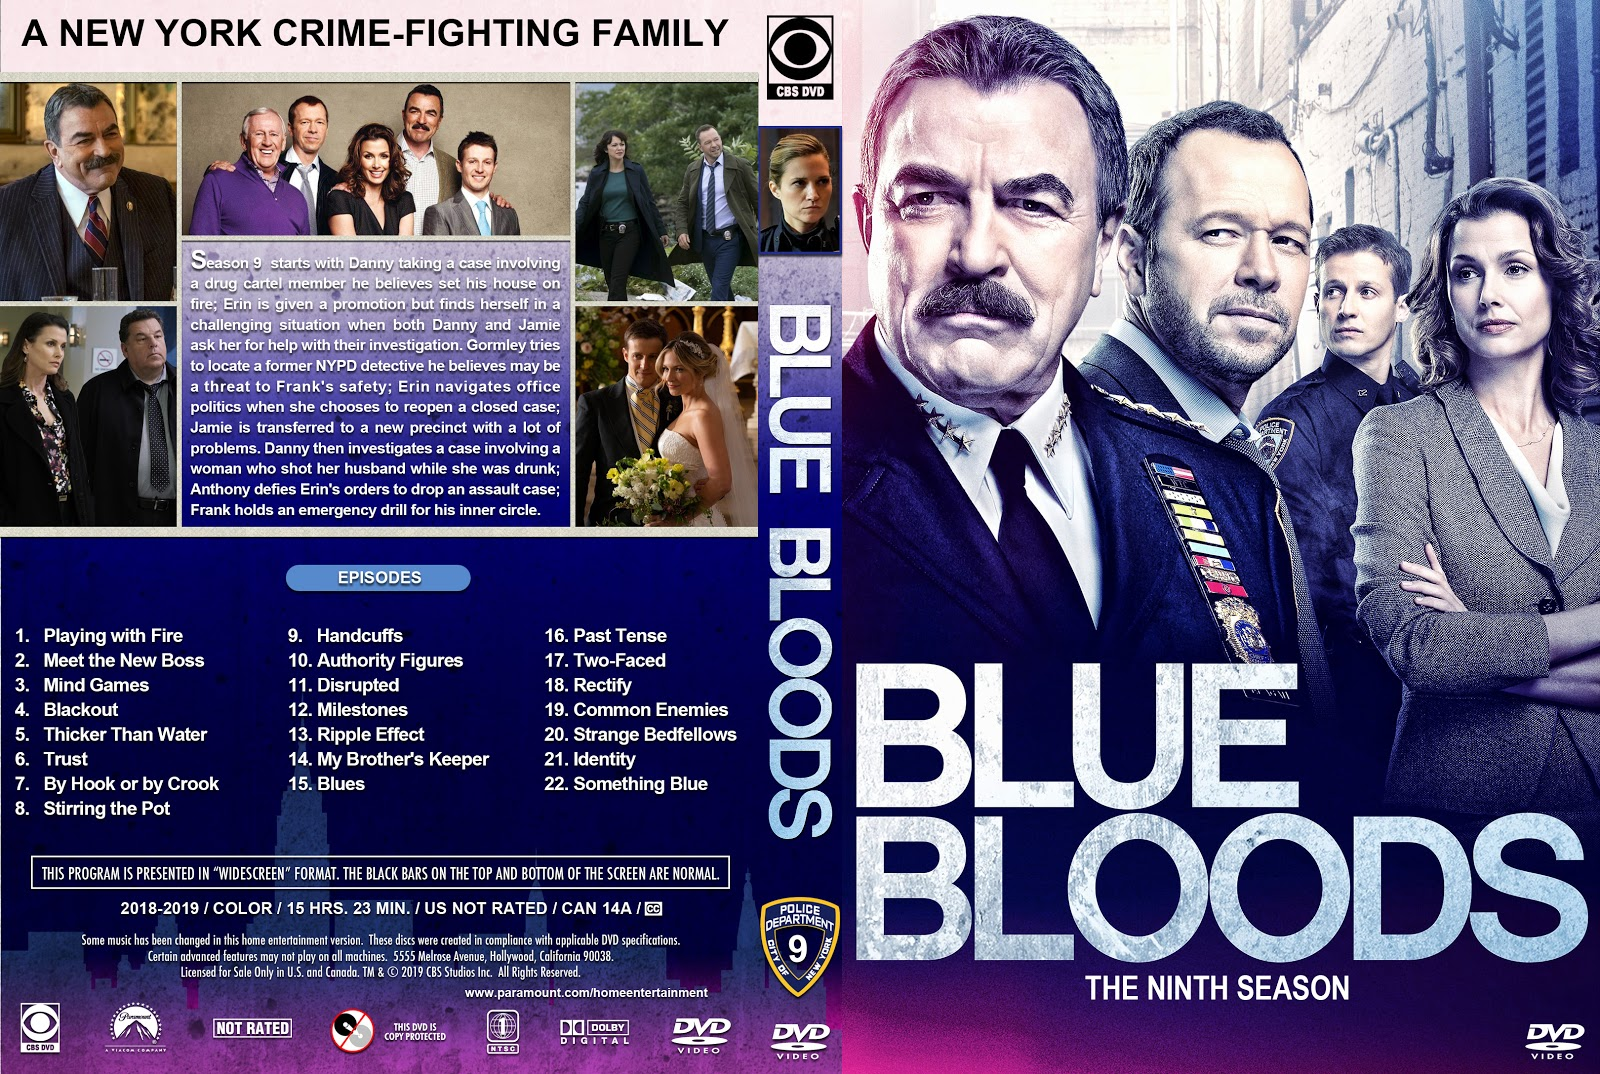 Blue Bloods Season 9 DVD Cover | Cover Addict - Free DVD